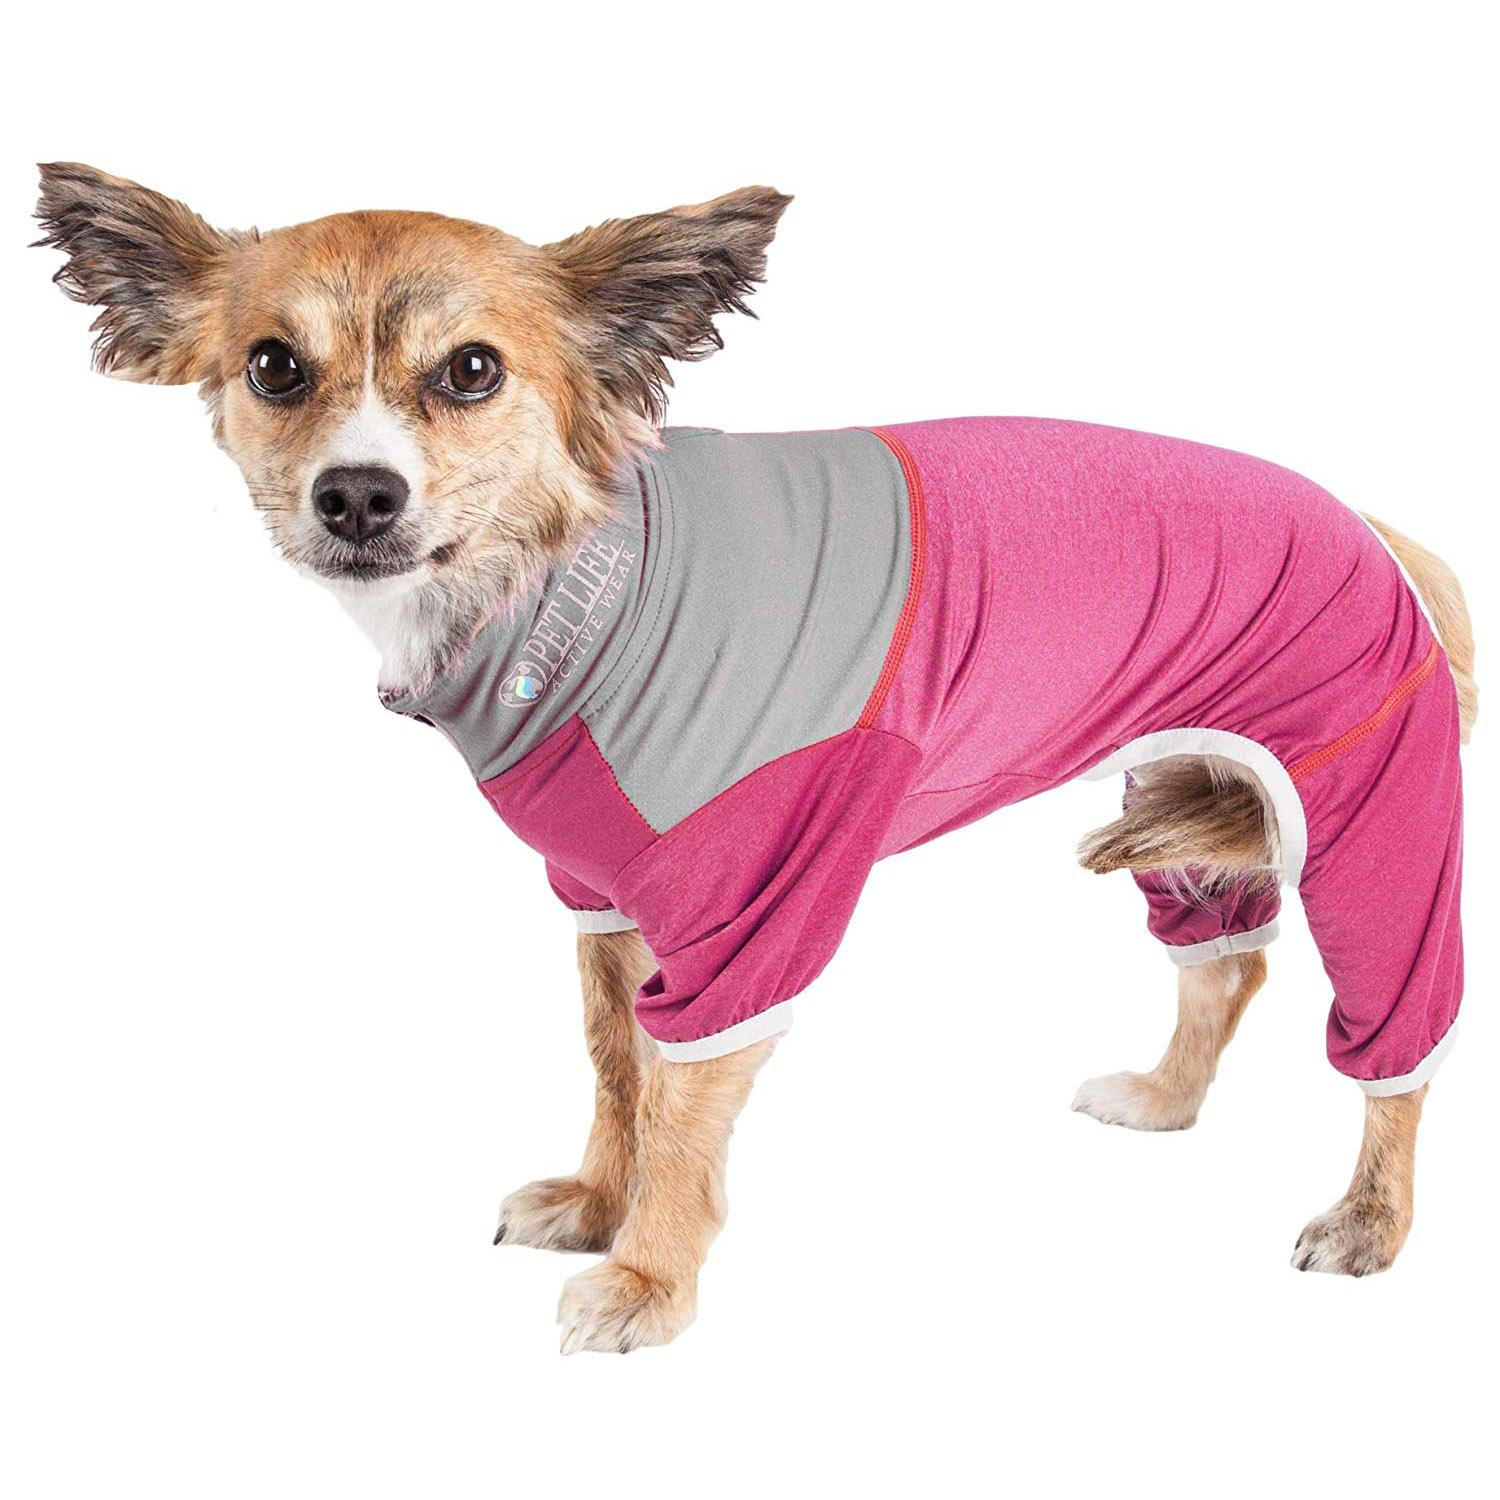 Pet Life ACTIVE 'Embarker' Performance Full-Body Dog Warm Up Suit - Pink and Gray